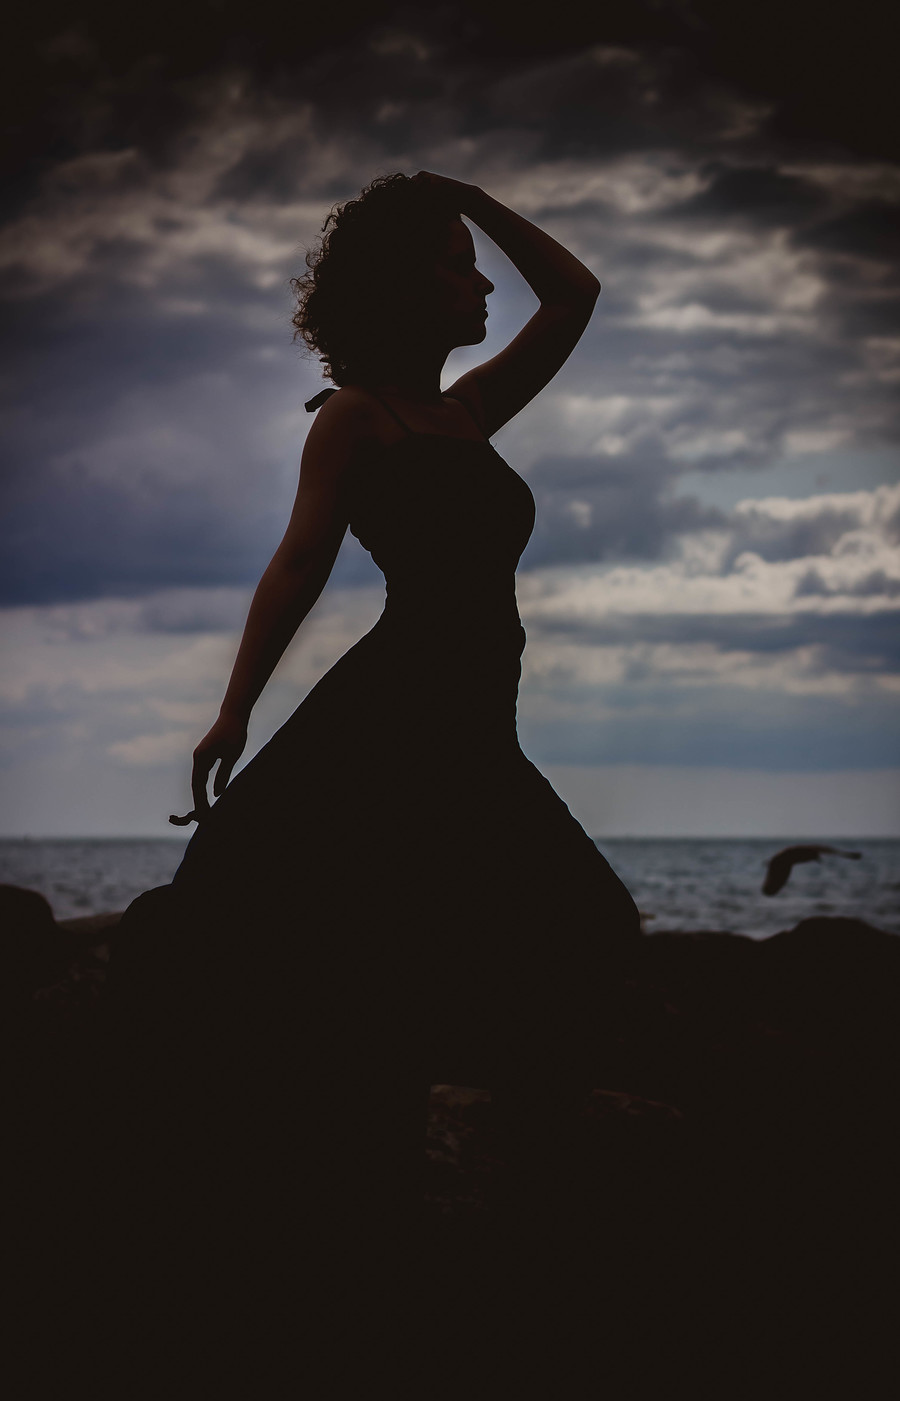 Silhouette ♥ / Photography by Madonna Marie / Uploaded 10th September 2019 @ 04:12 PM